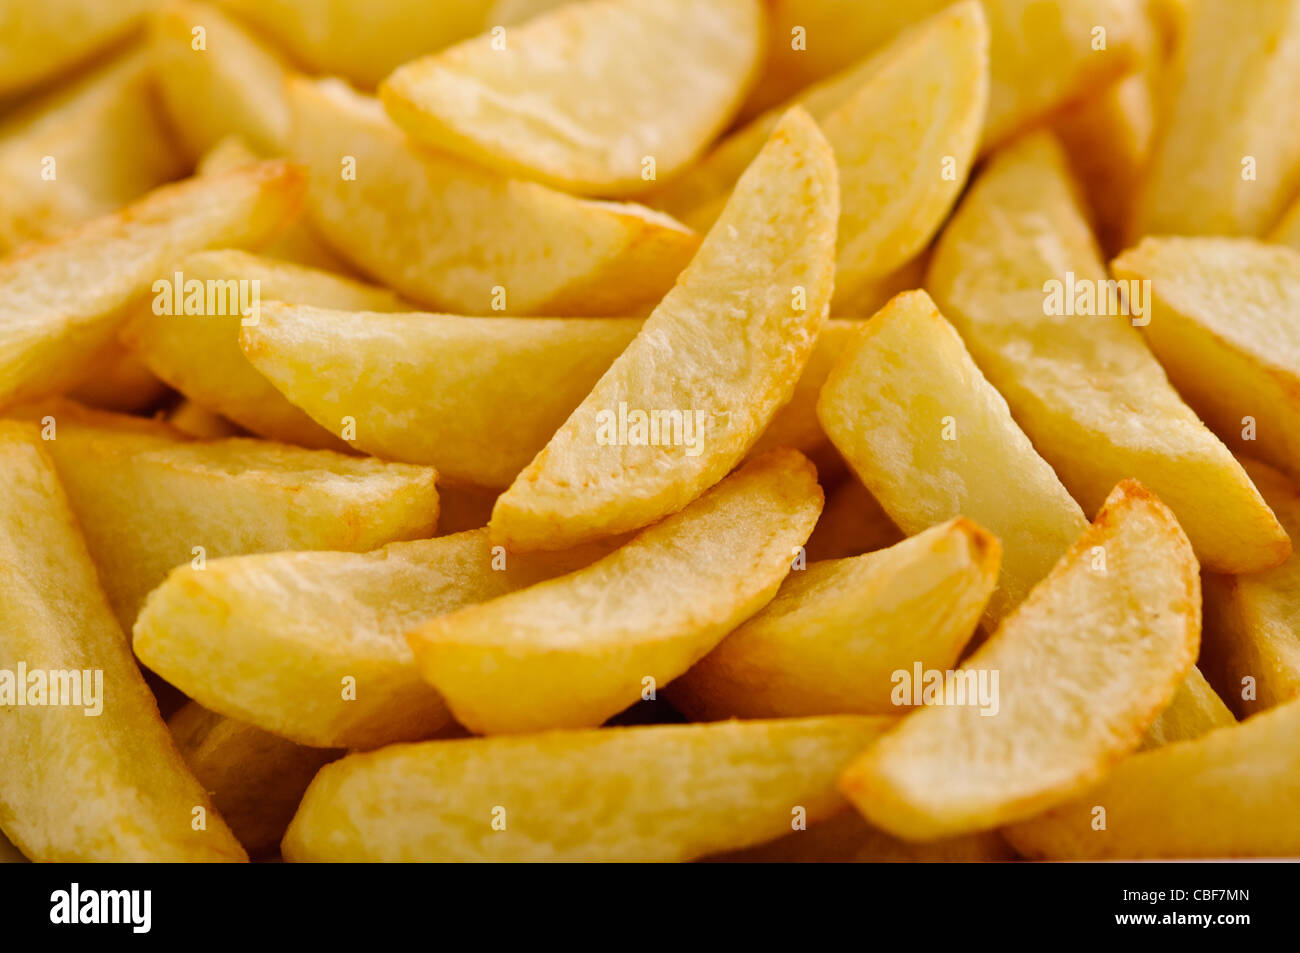 Classic British fat potato chips, cooked by deep frying in ...